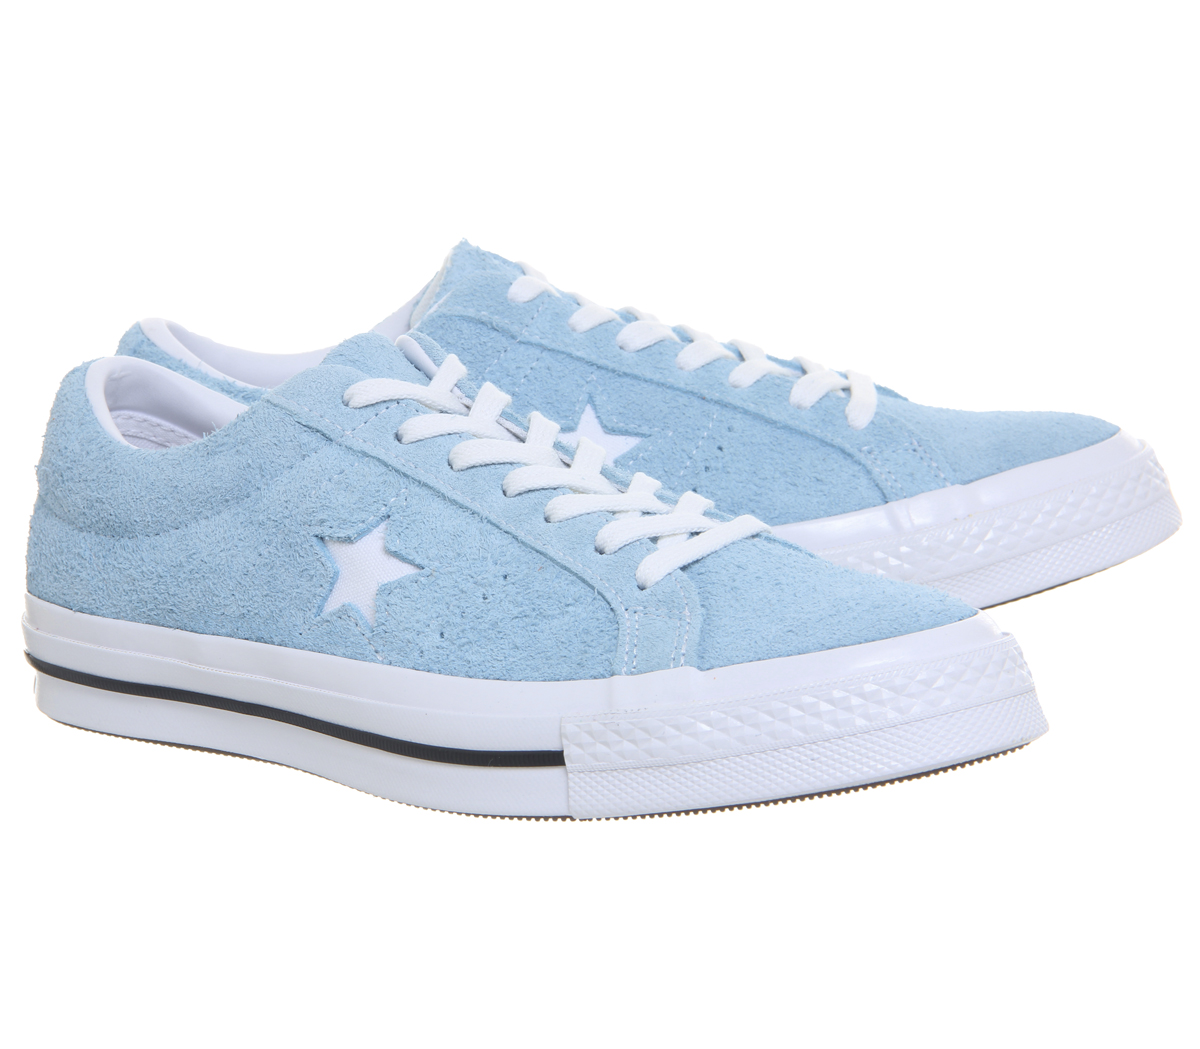 b6d55472b31c Womens Converse One Star Trainers Shoreline Blue White Trainers ...